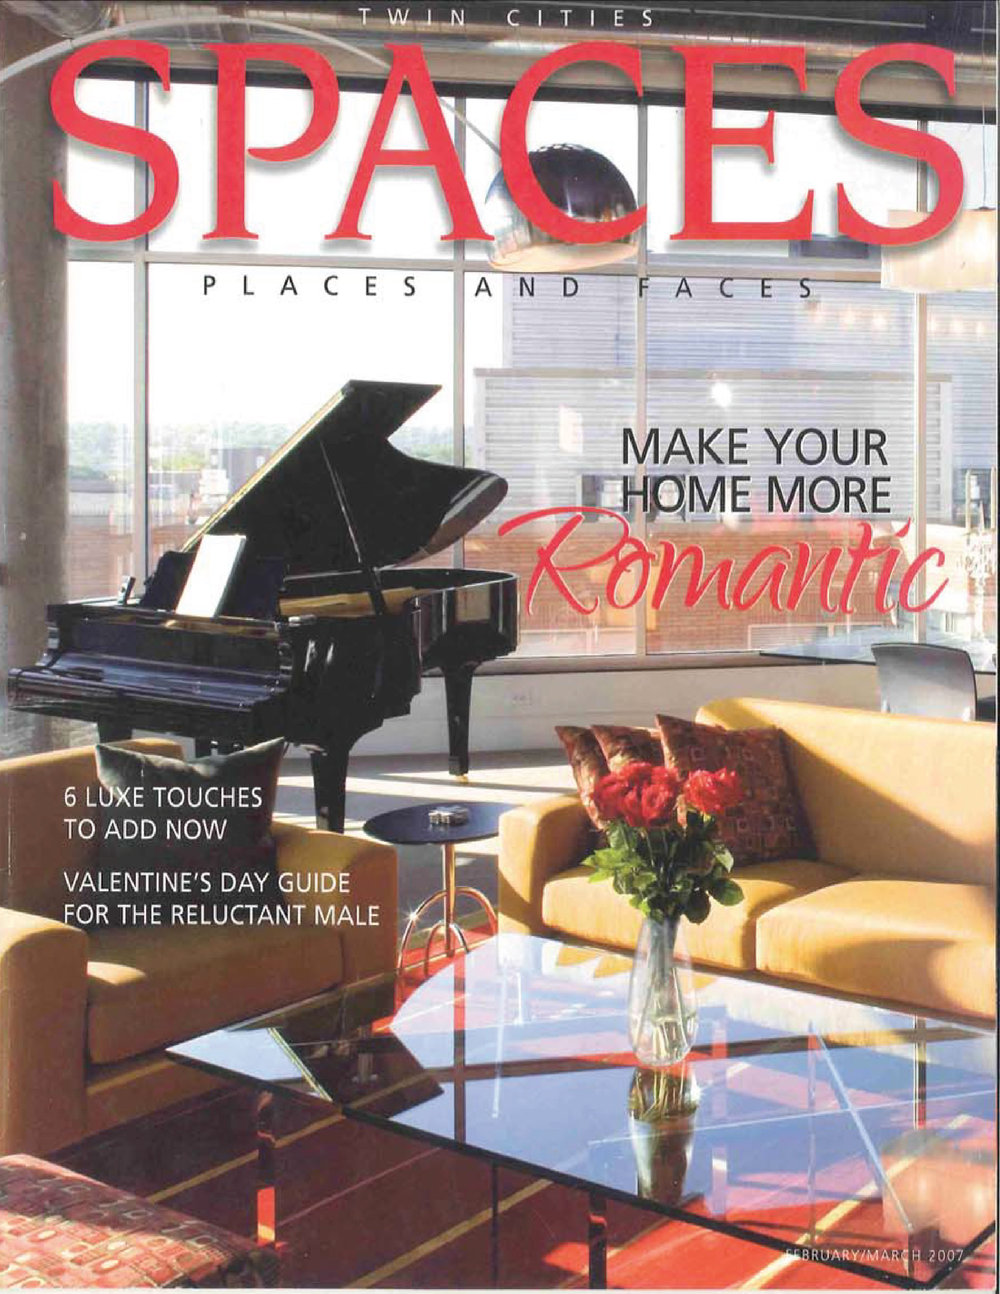 Magazine Covers_2007 FM_Spaces.jpg